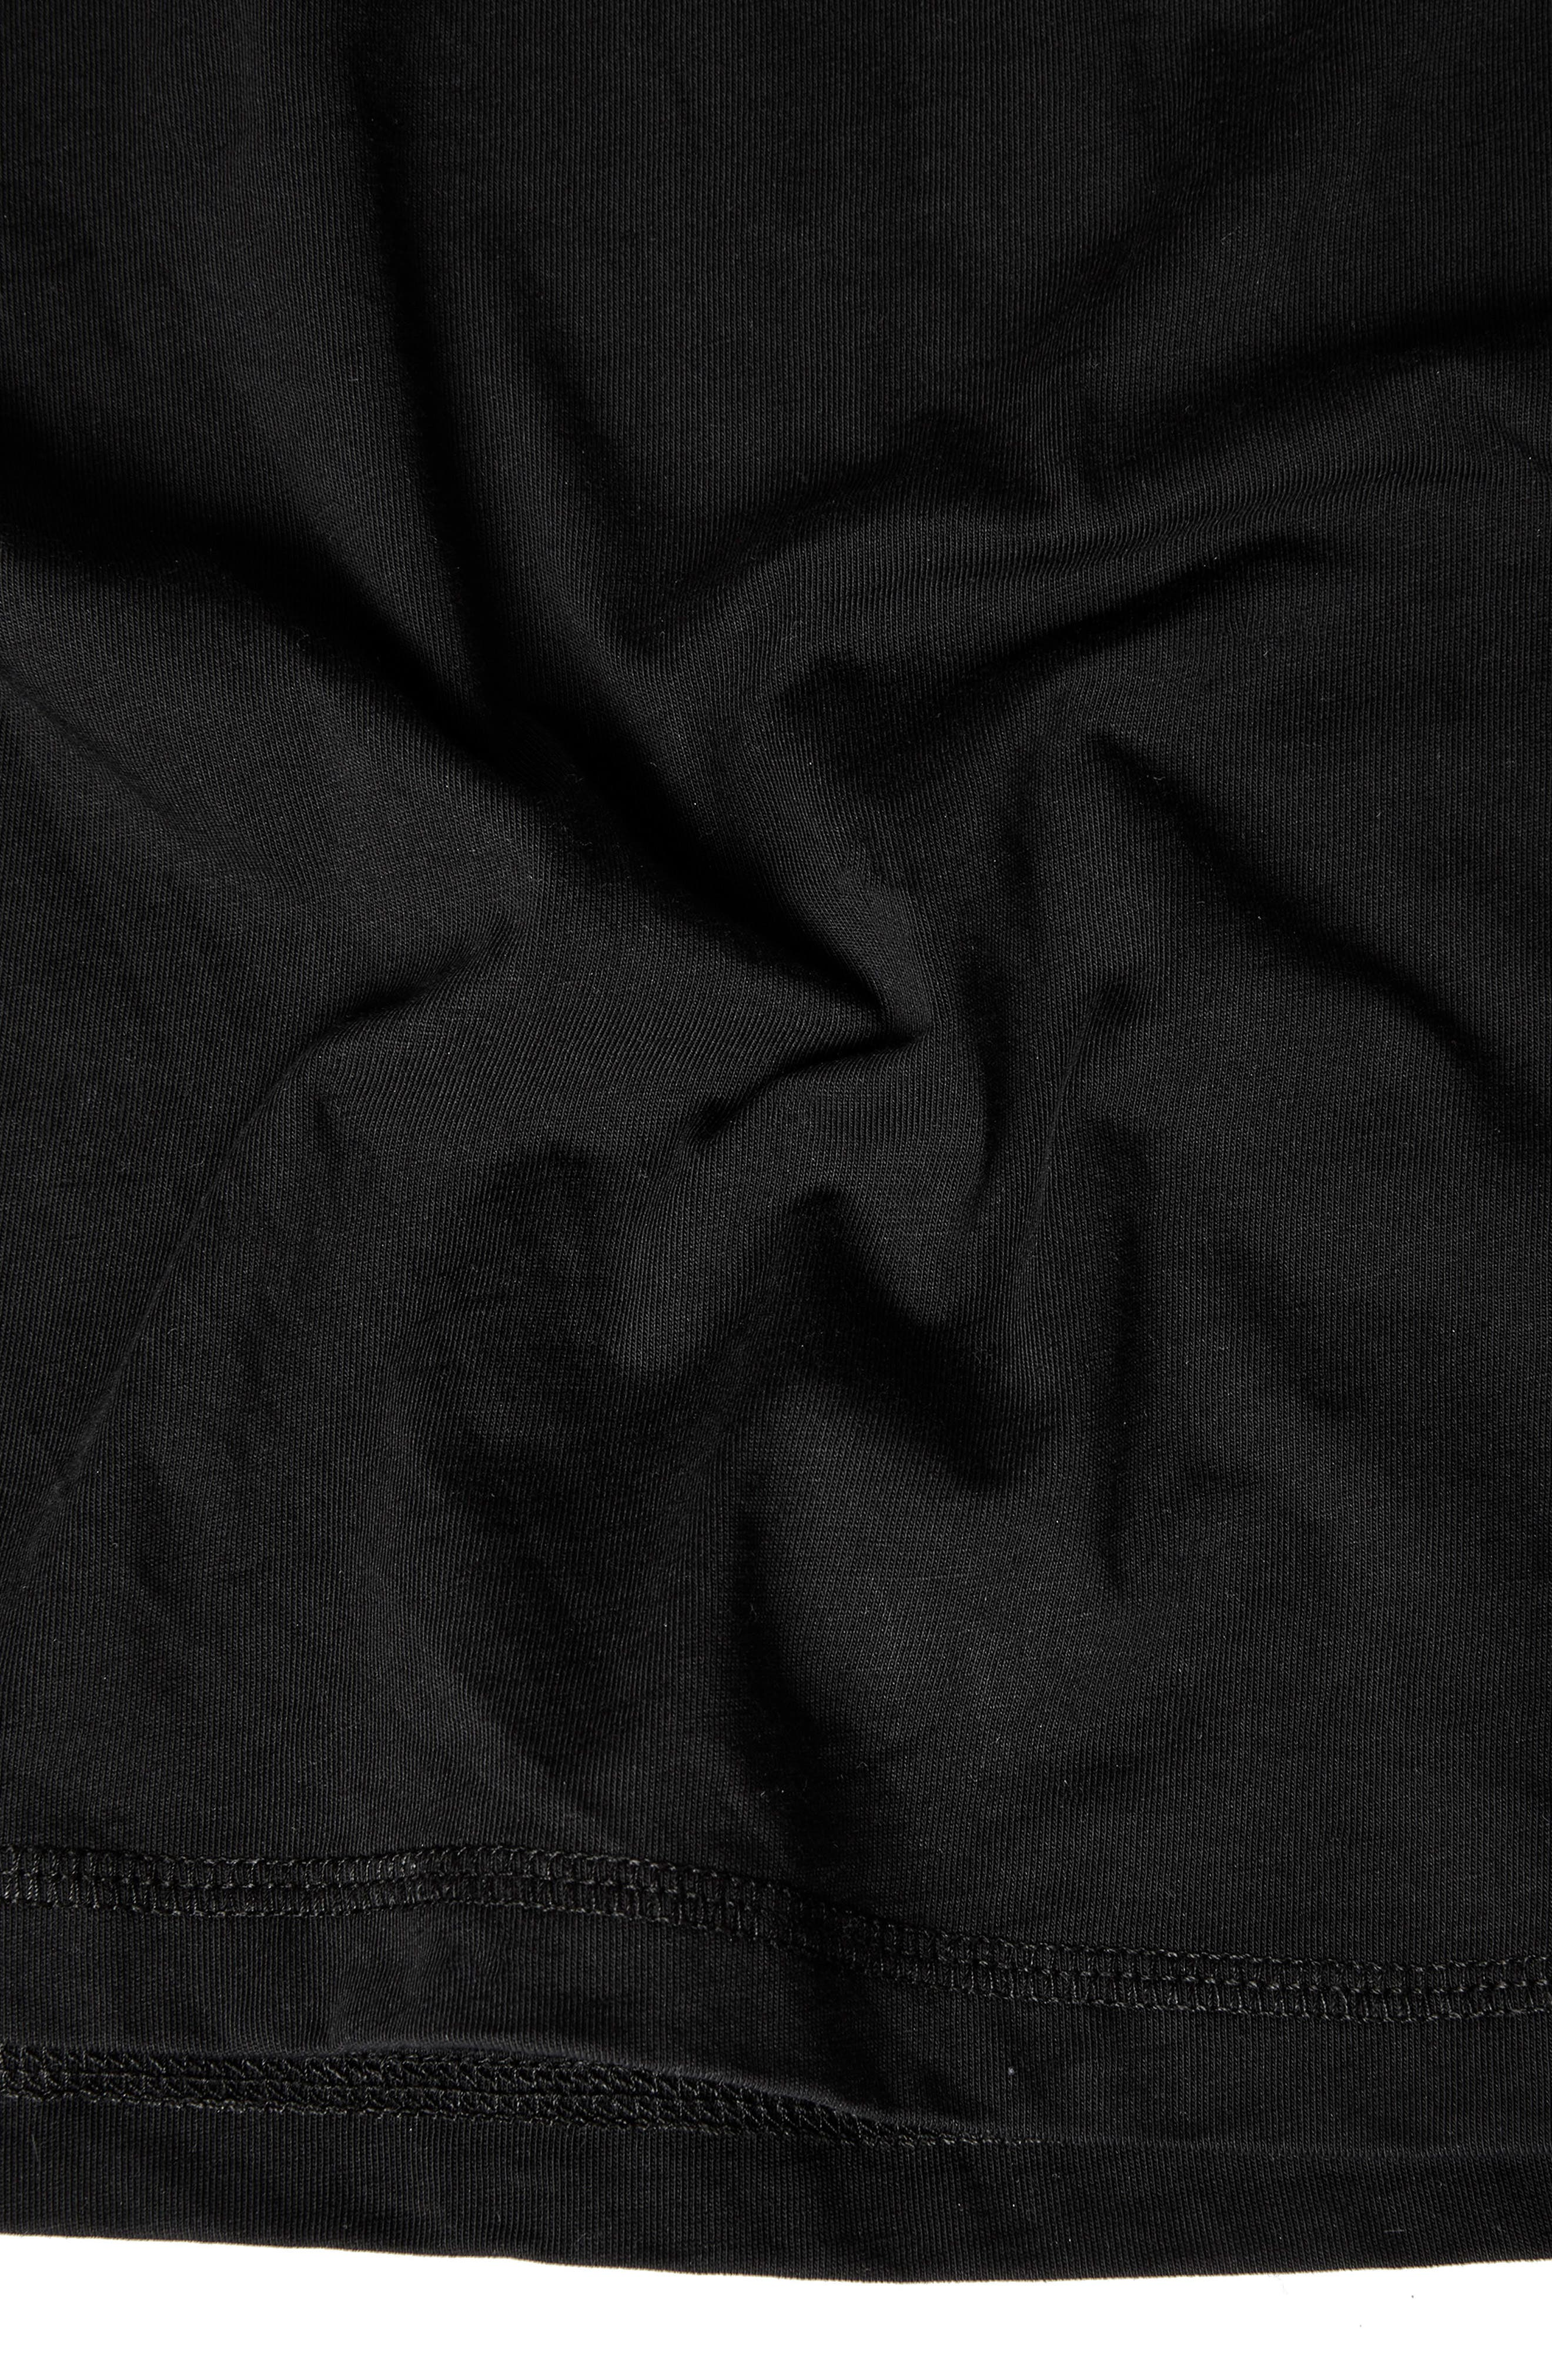 Raw Sleeve Top,                             Alternate thumbnail 2, color,                             001